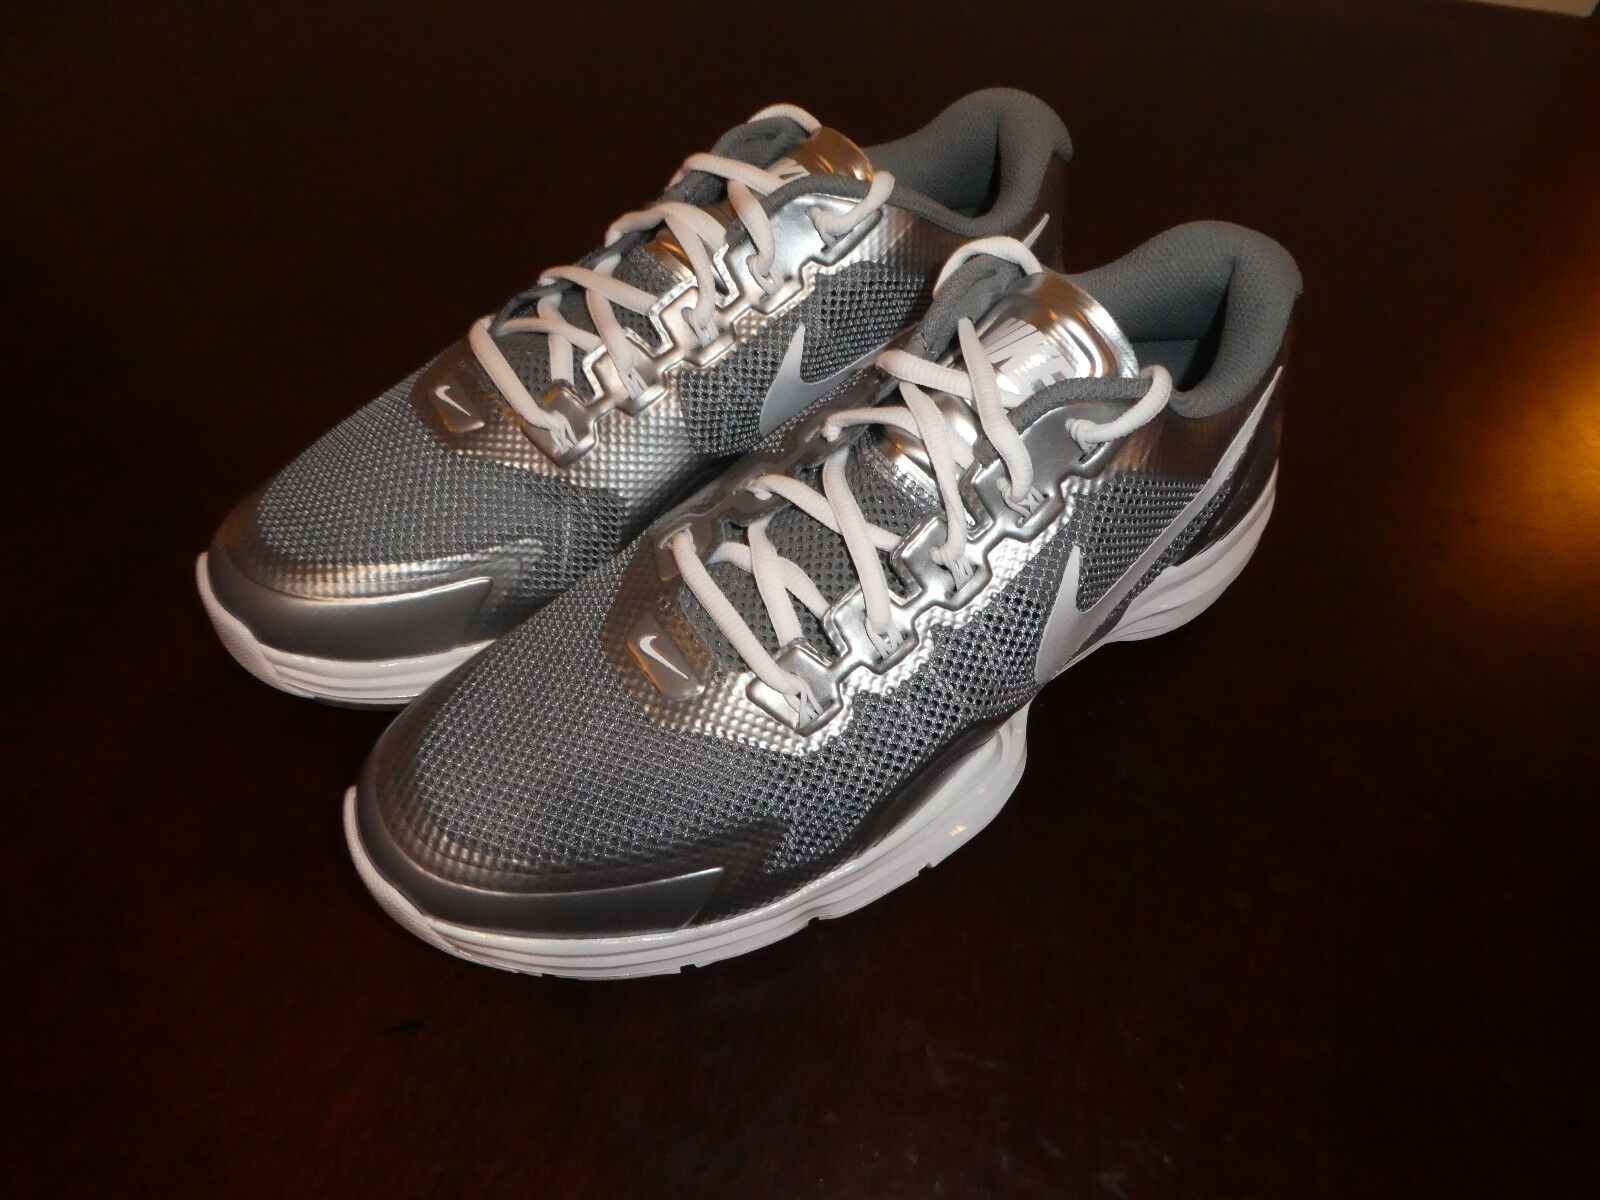 Nike Trainer Lunar TR1 shoes Sneakers New 529169 002 size 9.5